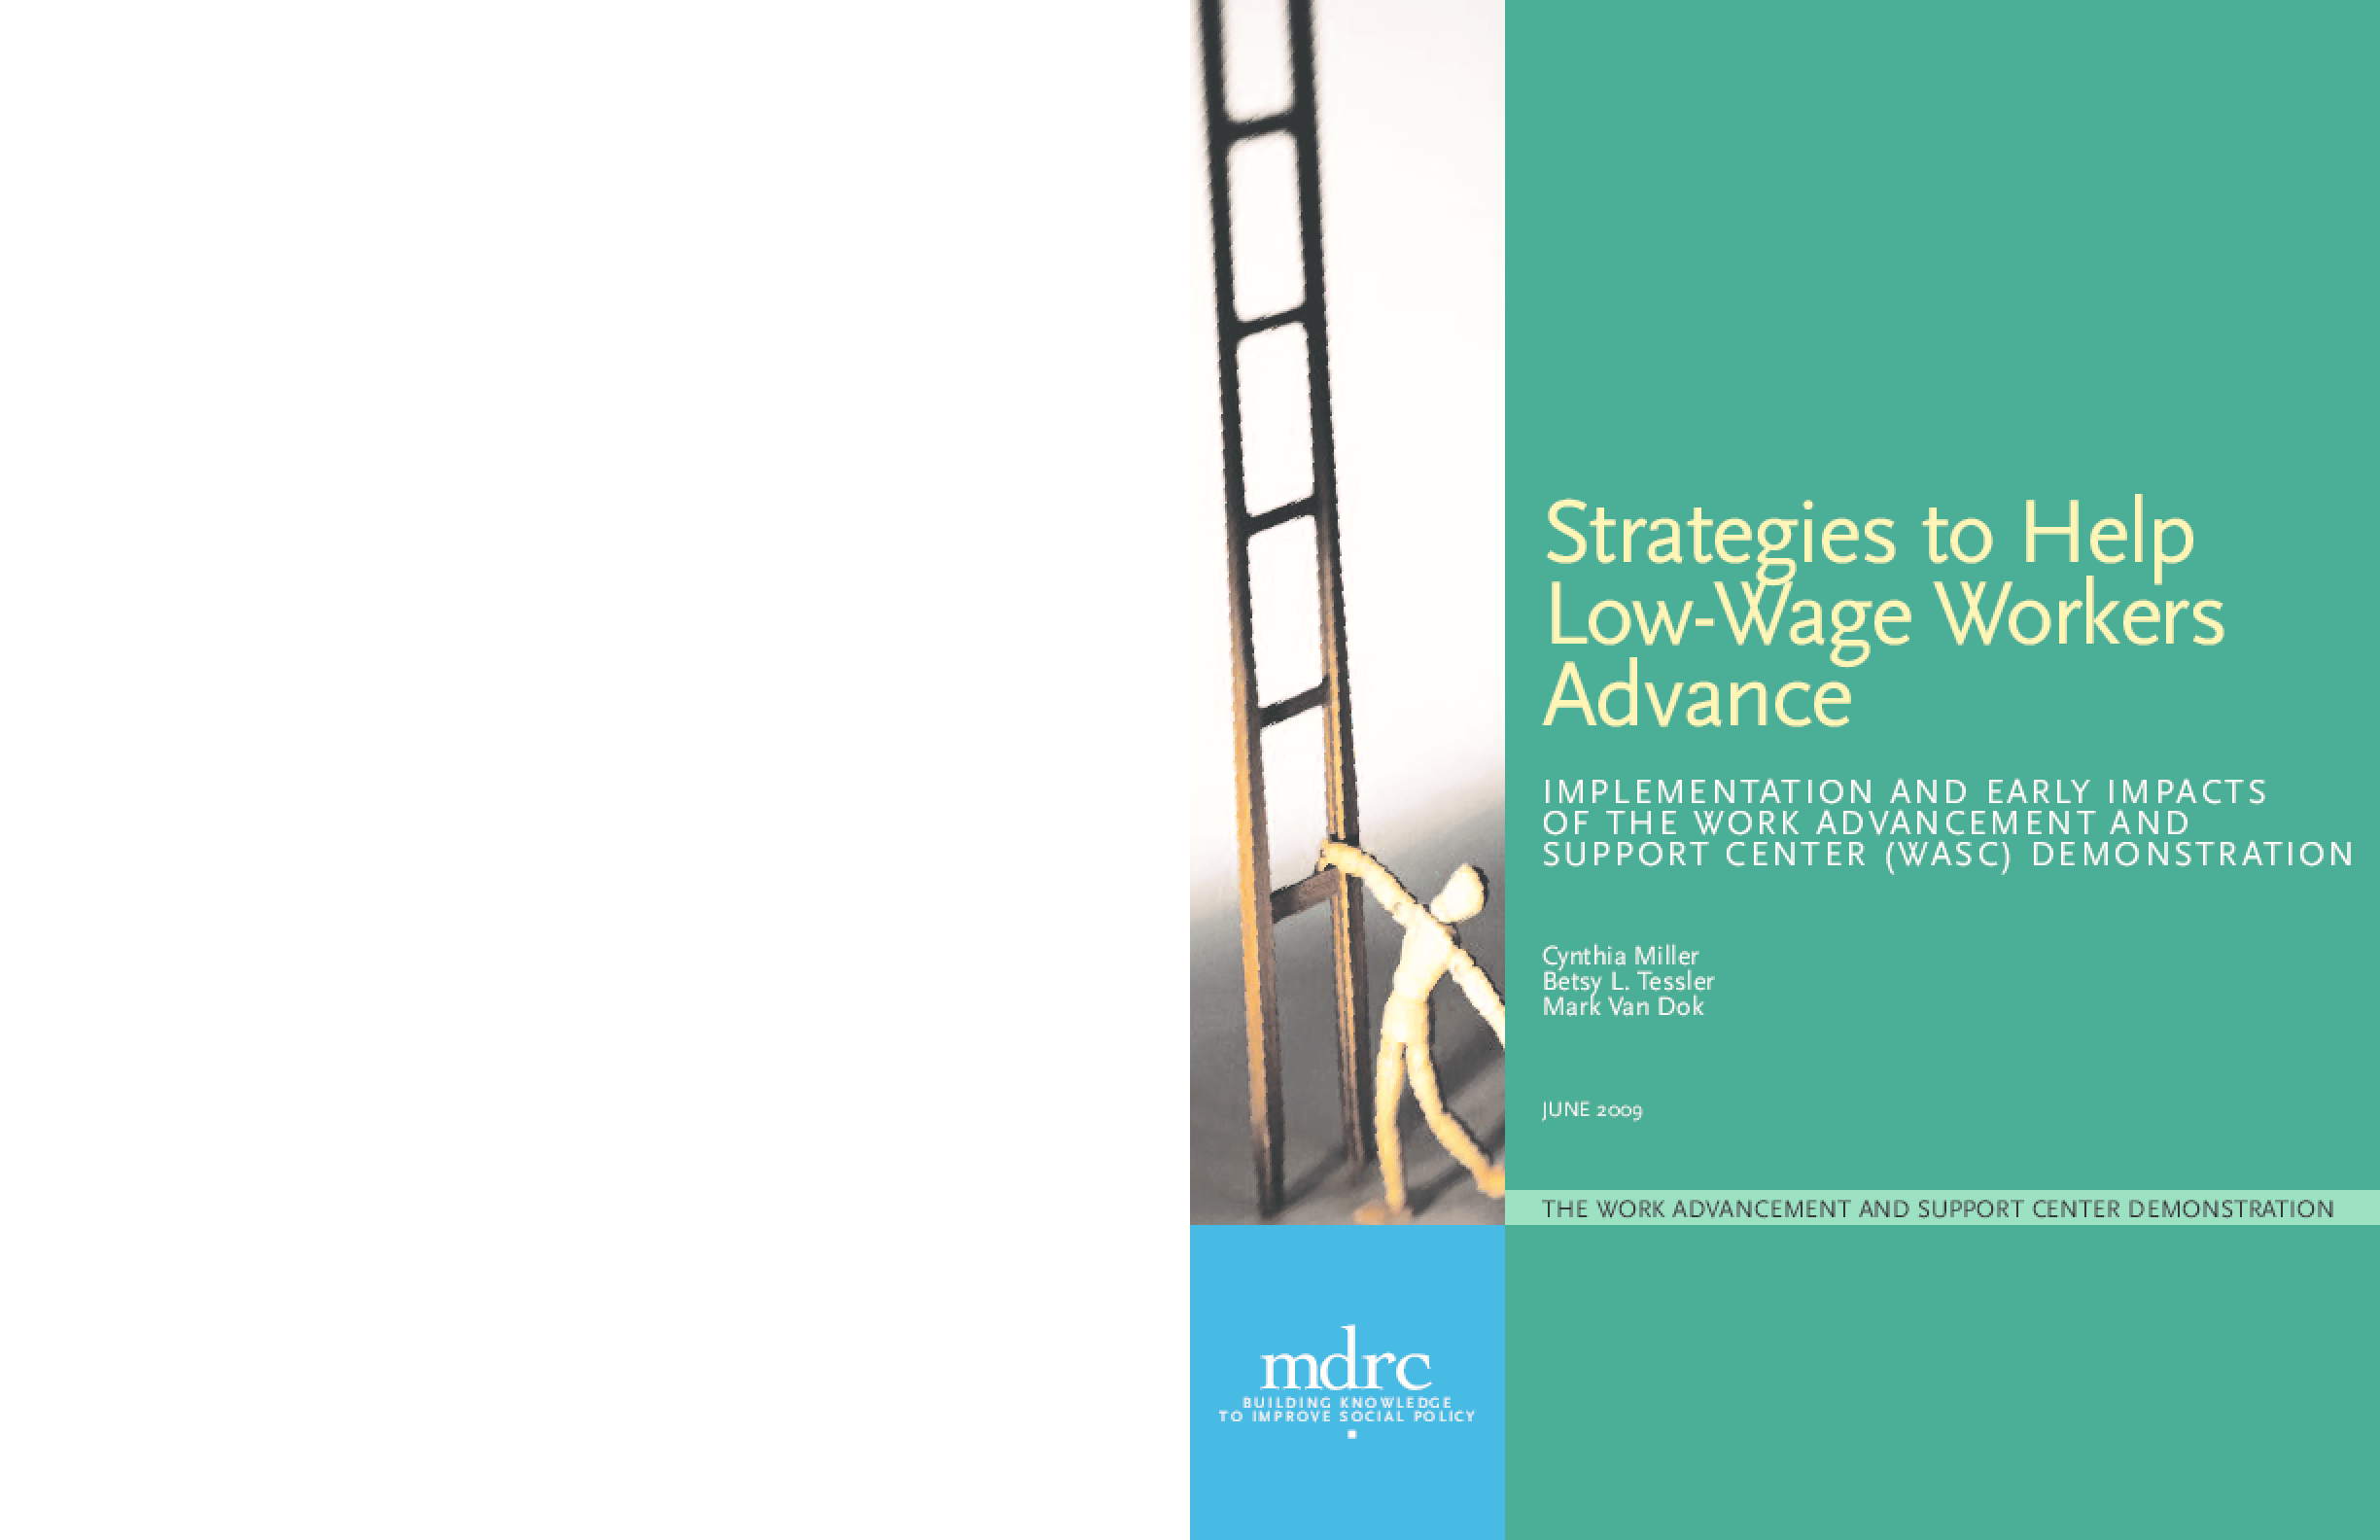 Strategies to Help Low-Wage Workers Advance: Implementation and Early Impacts of the Work Advancement and Support Center (WASC) Demonstration